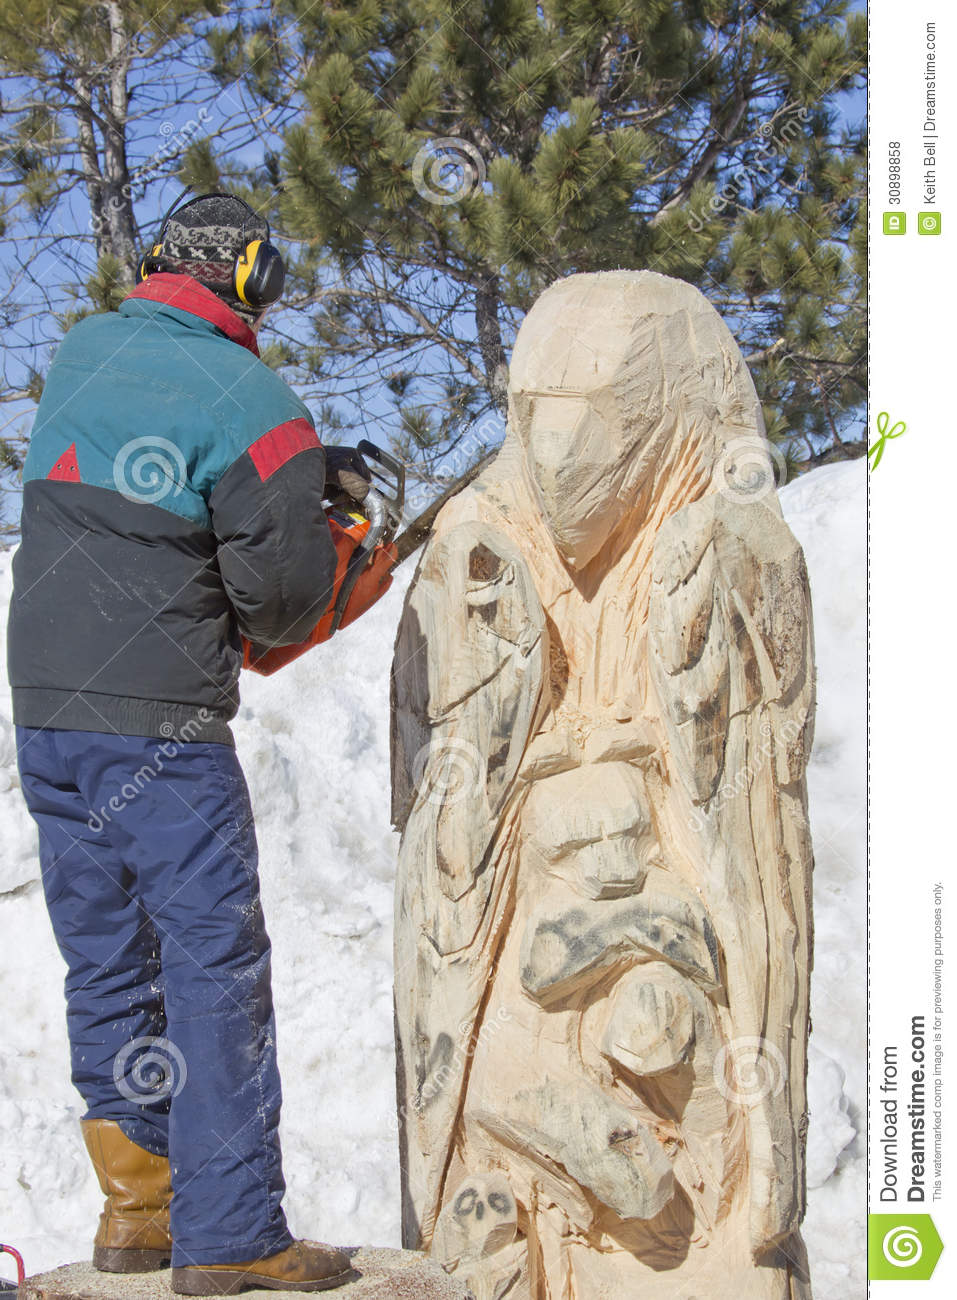 Man carving details of huge bear from log with chainsaw